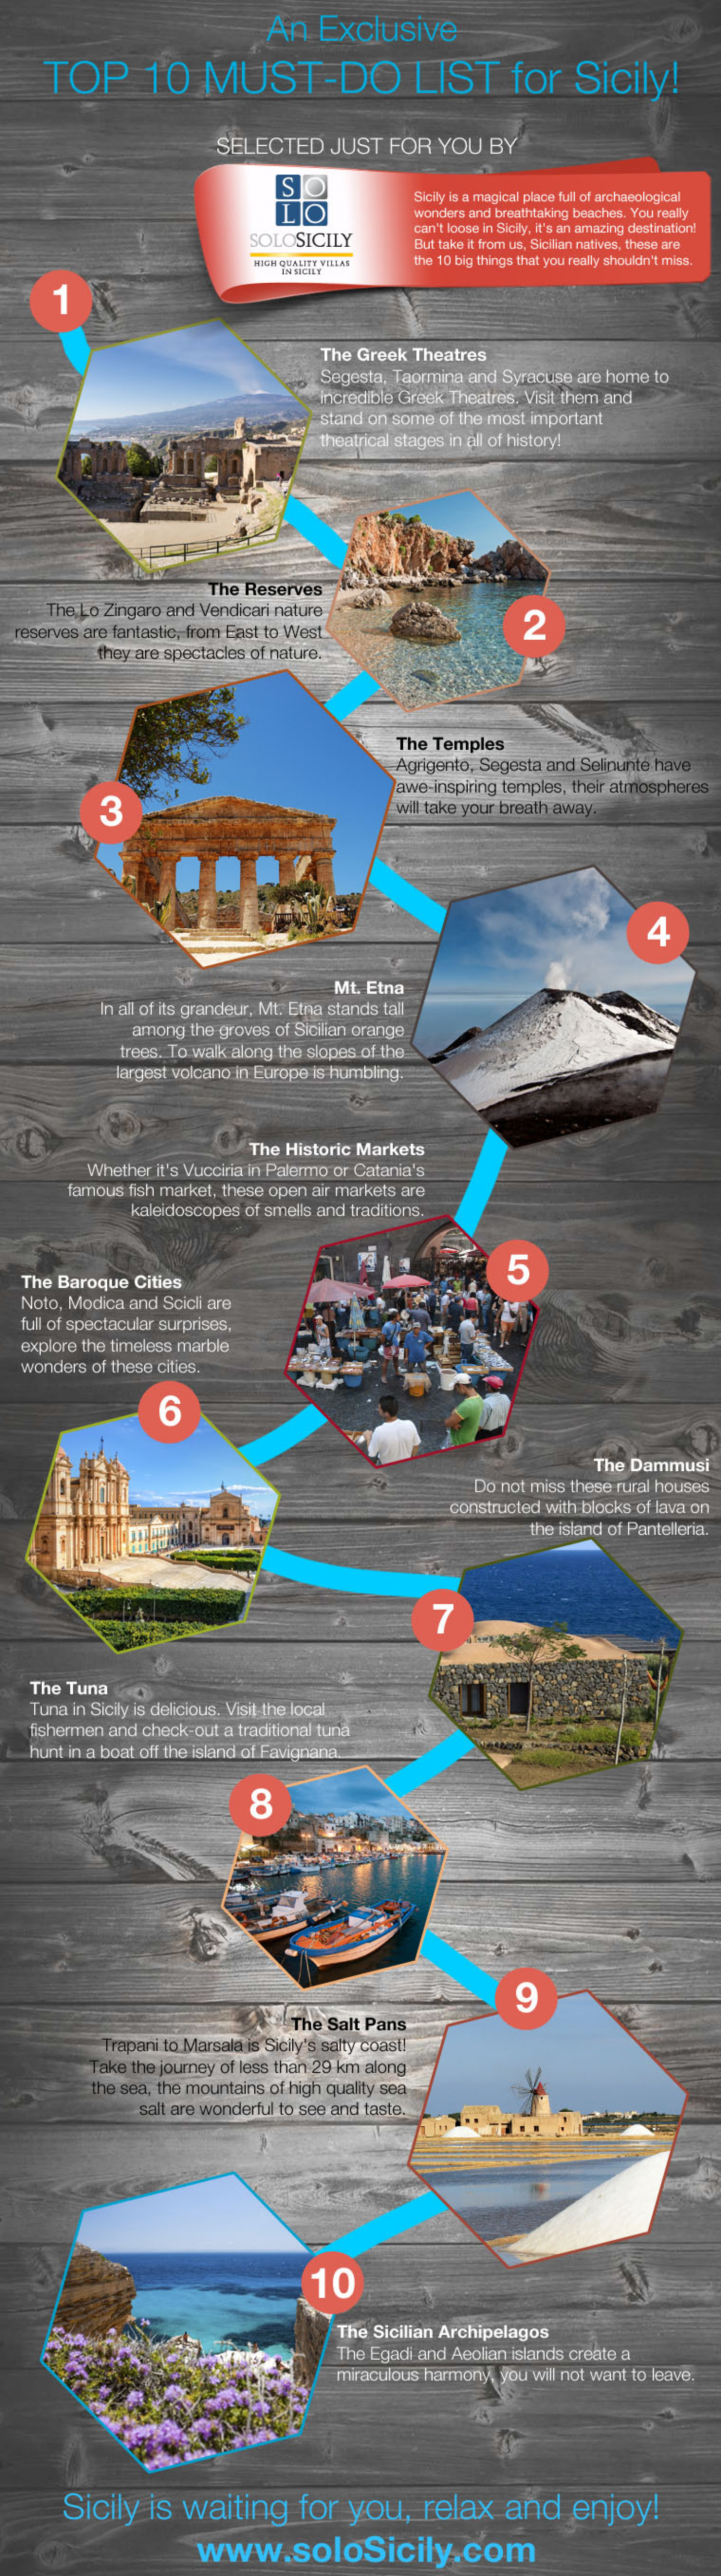 Top 10 must-do list for Sicily! Infographic